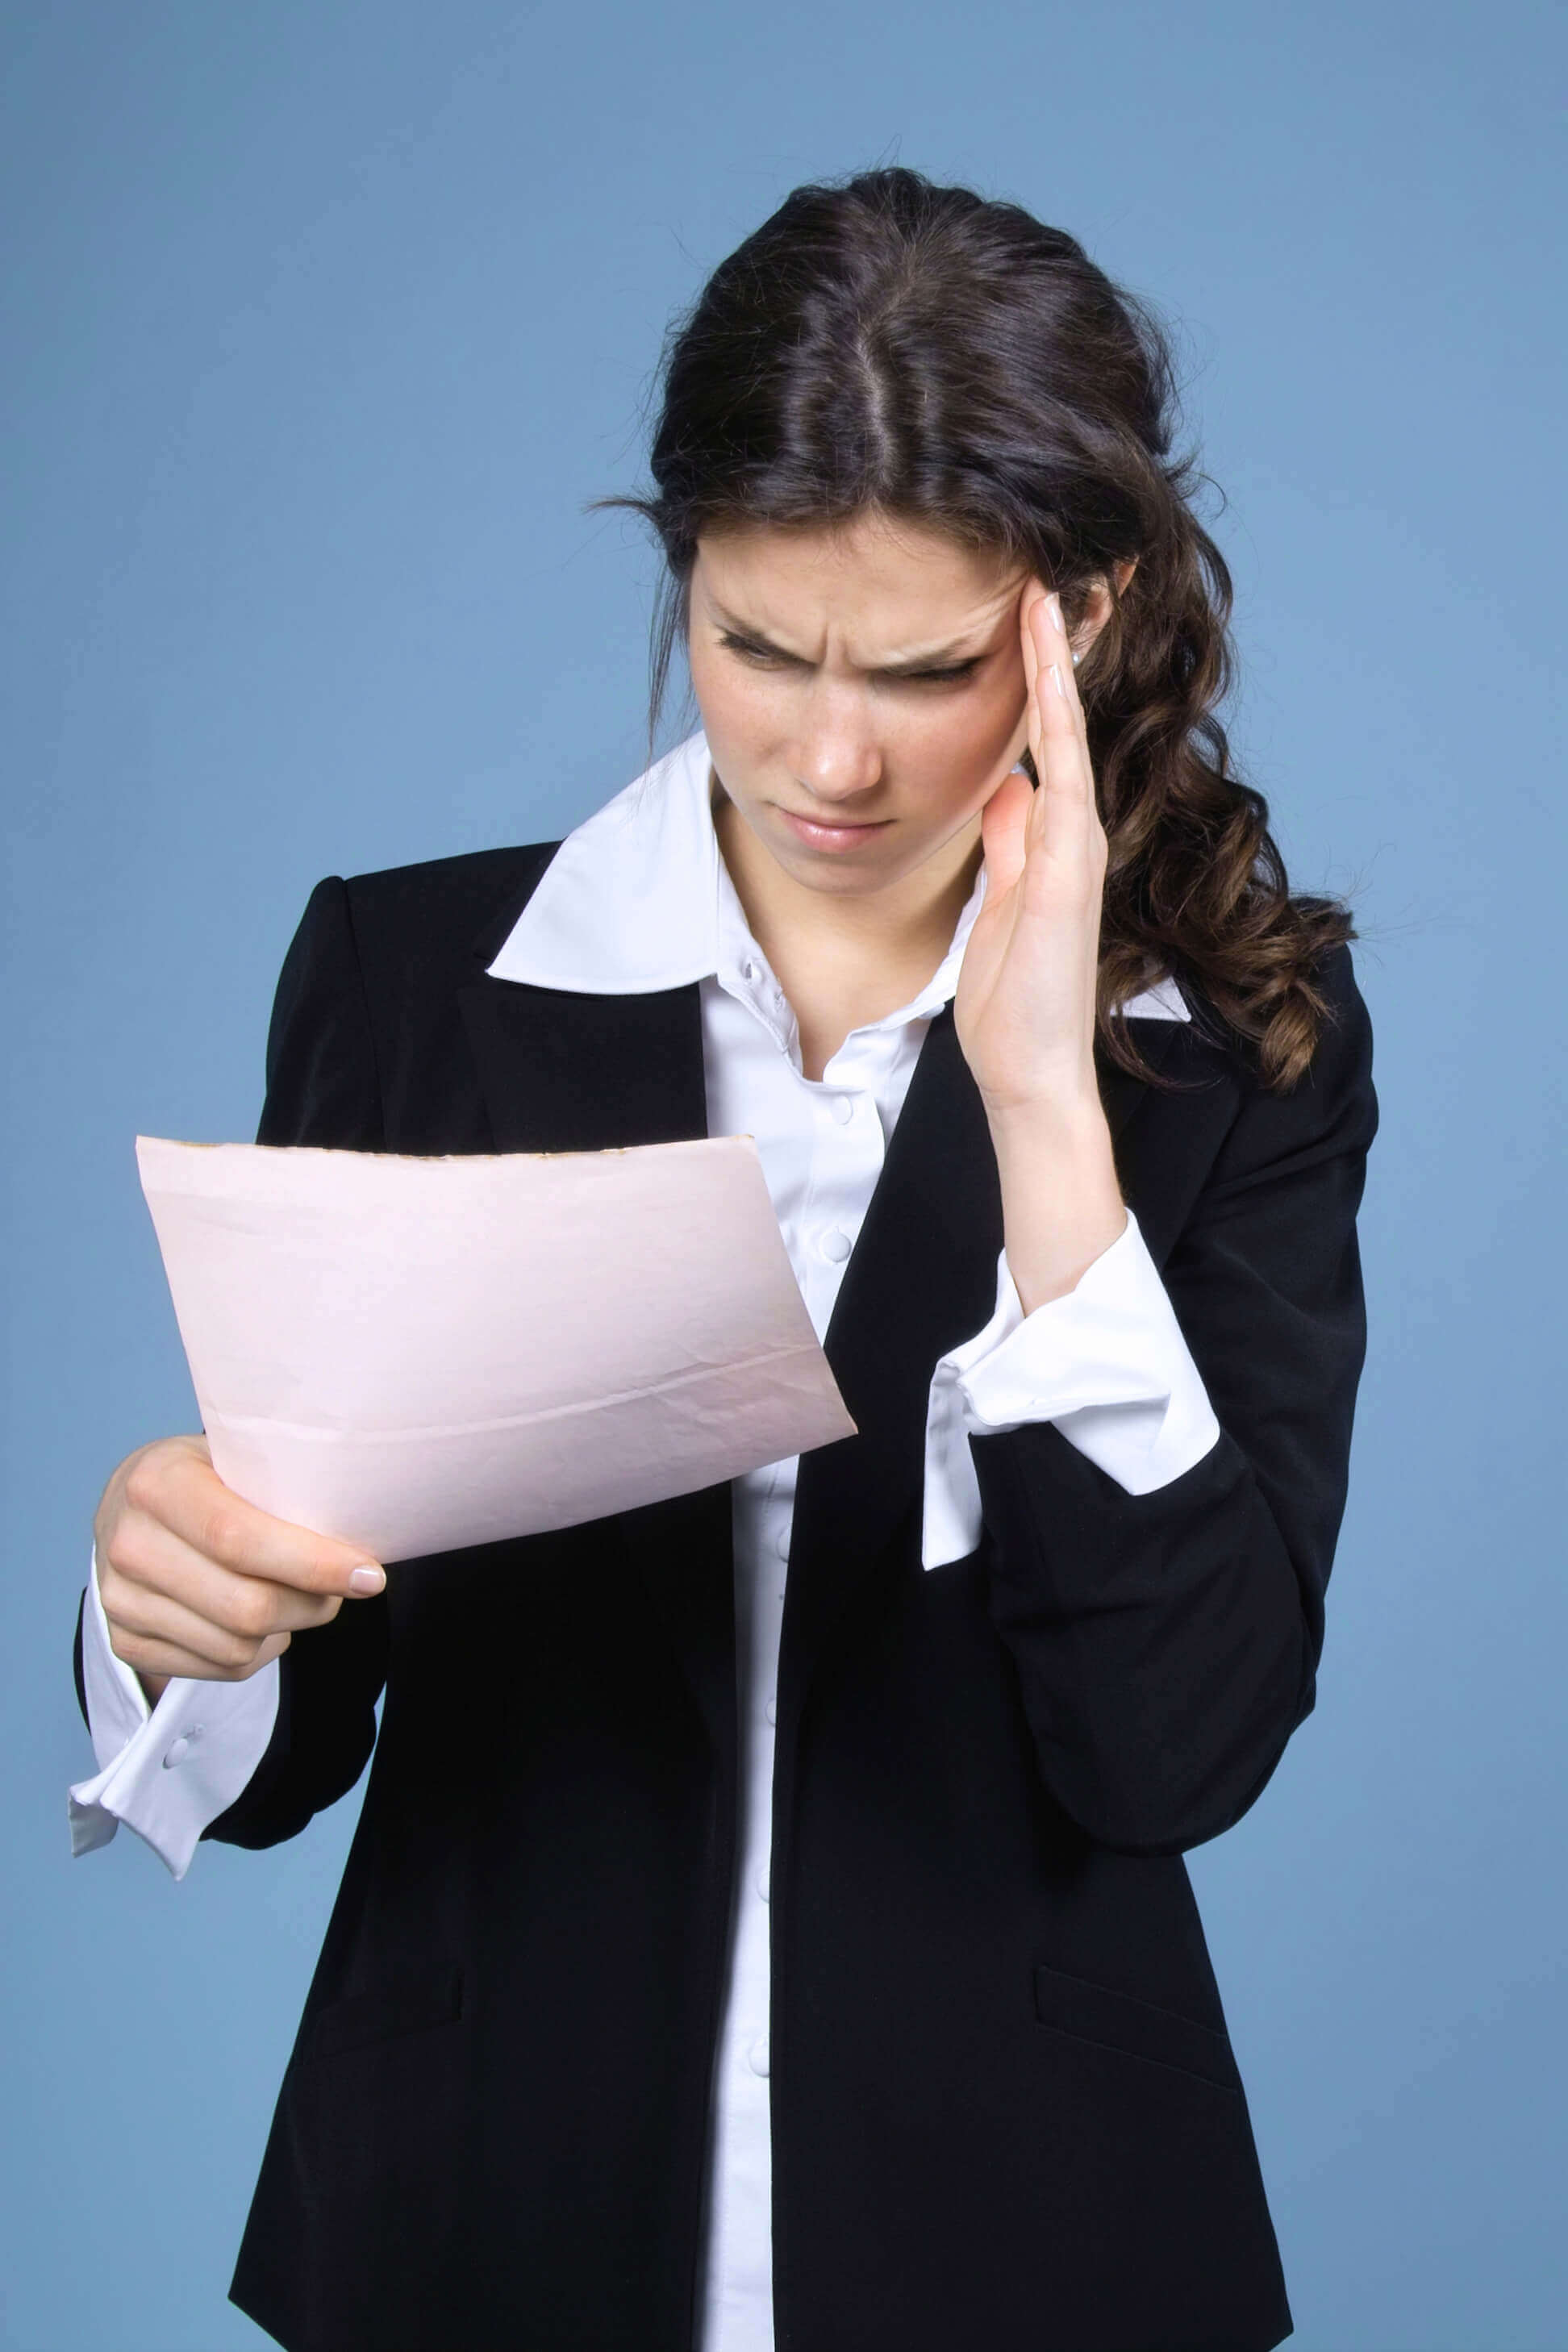 Financial anxiety creates stress in your life